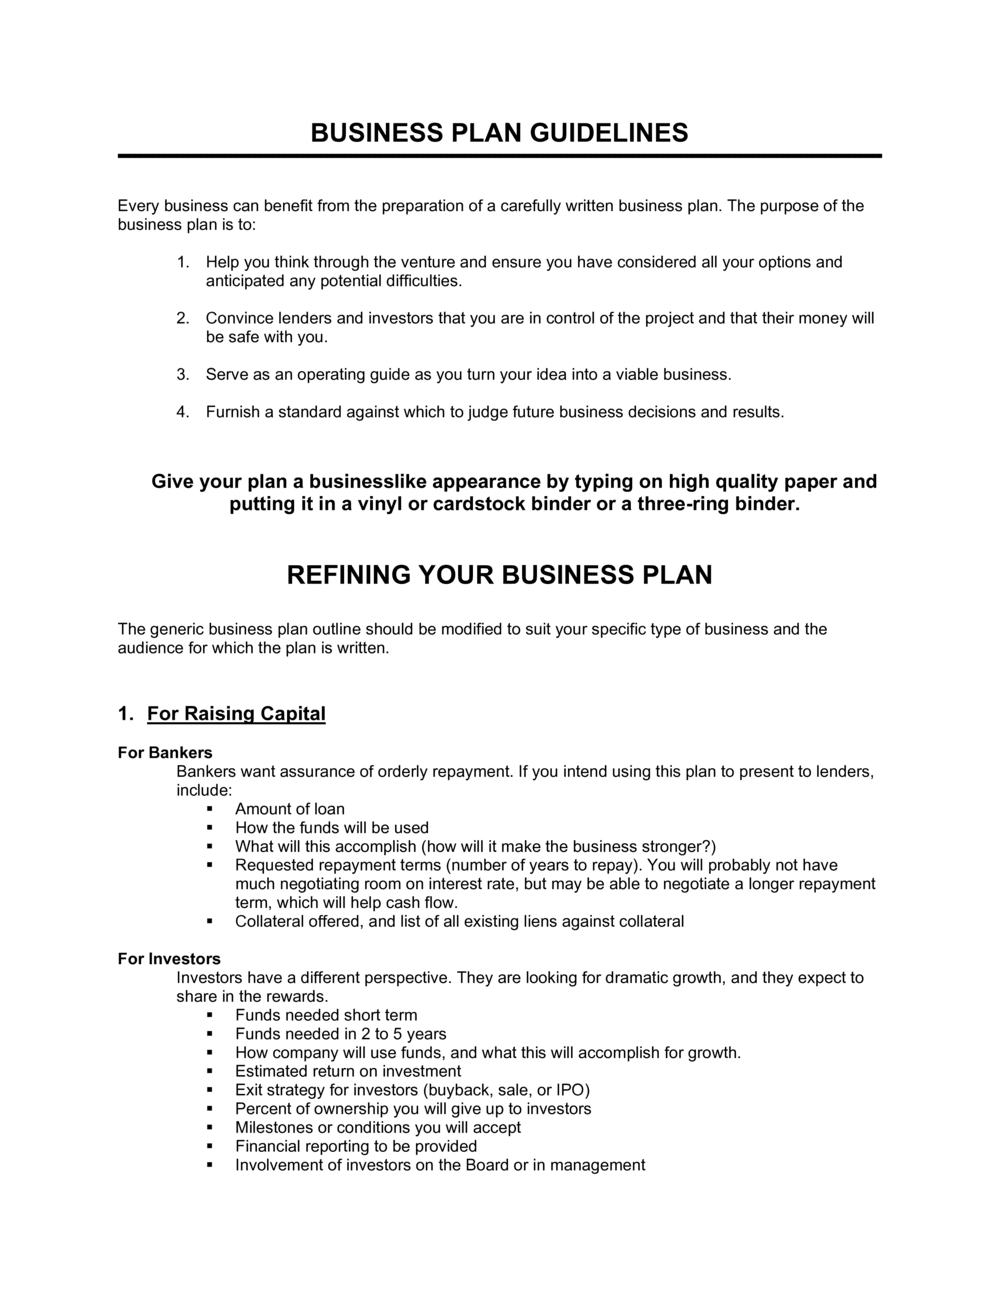 Business-in-a-Box's Business Plan Guidelines Template